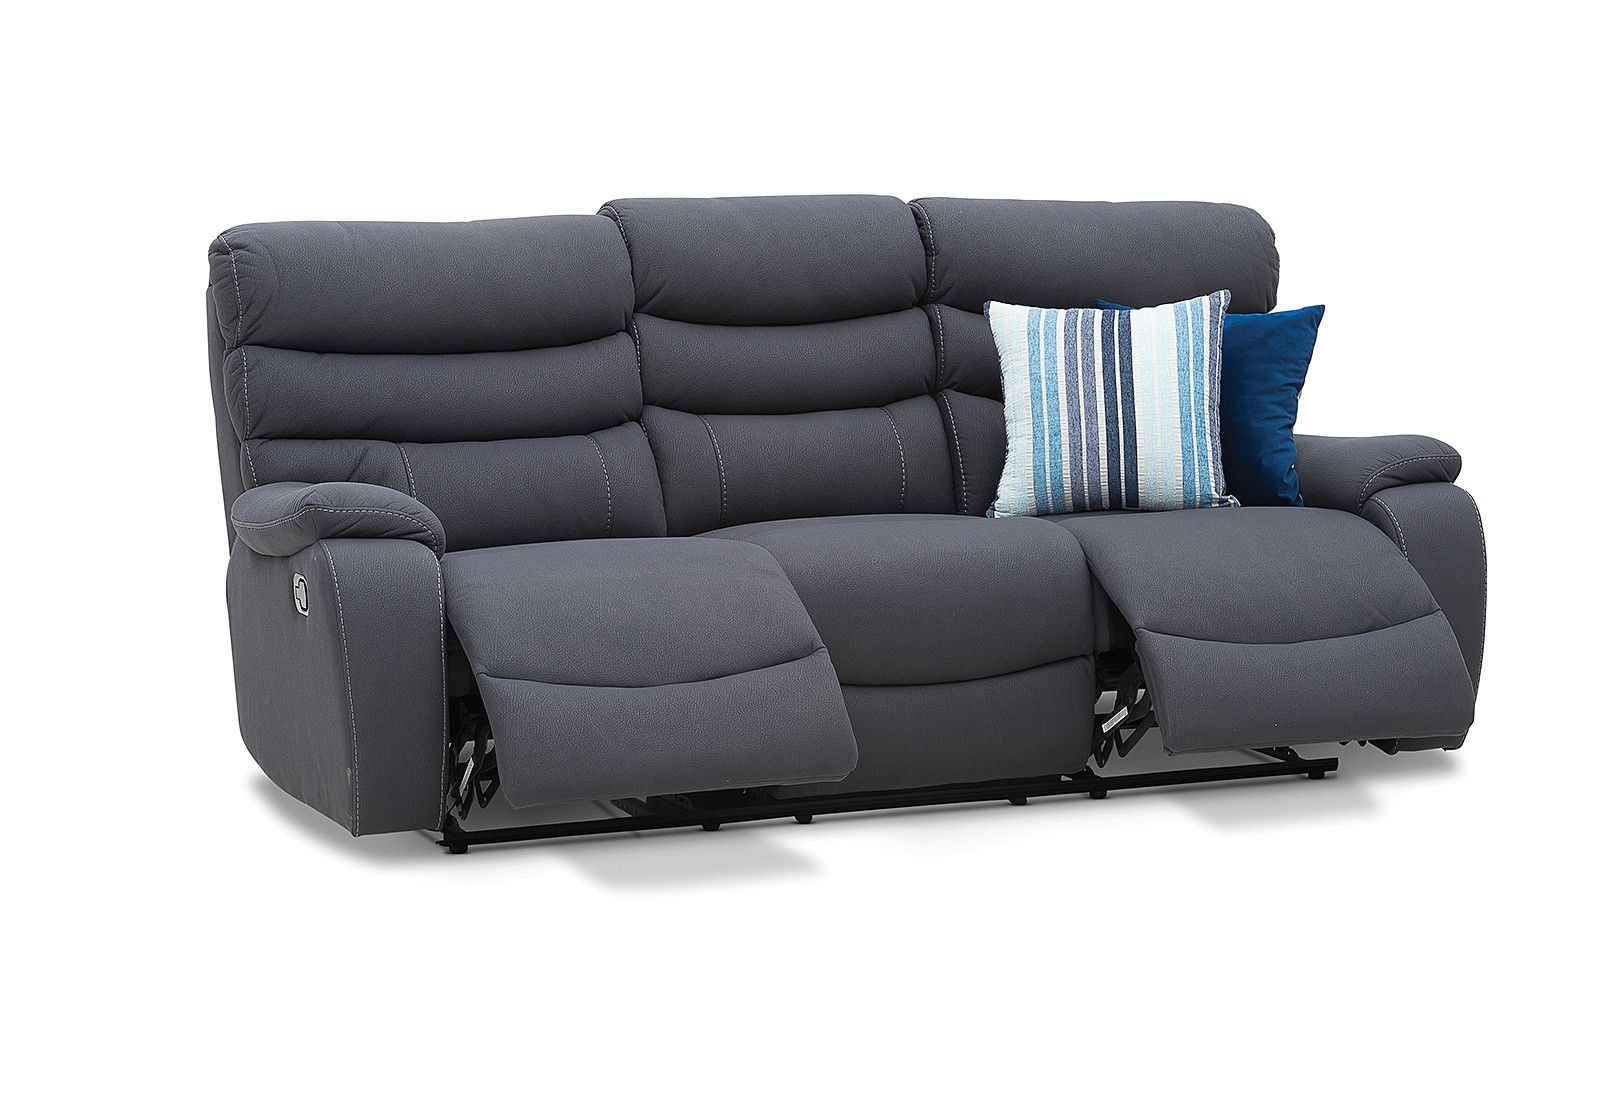 Rowan Furniture Offers Furniture Recliner